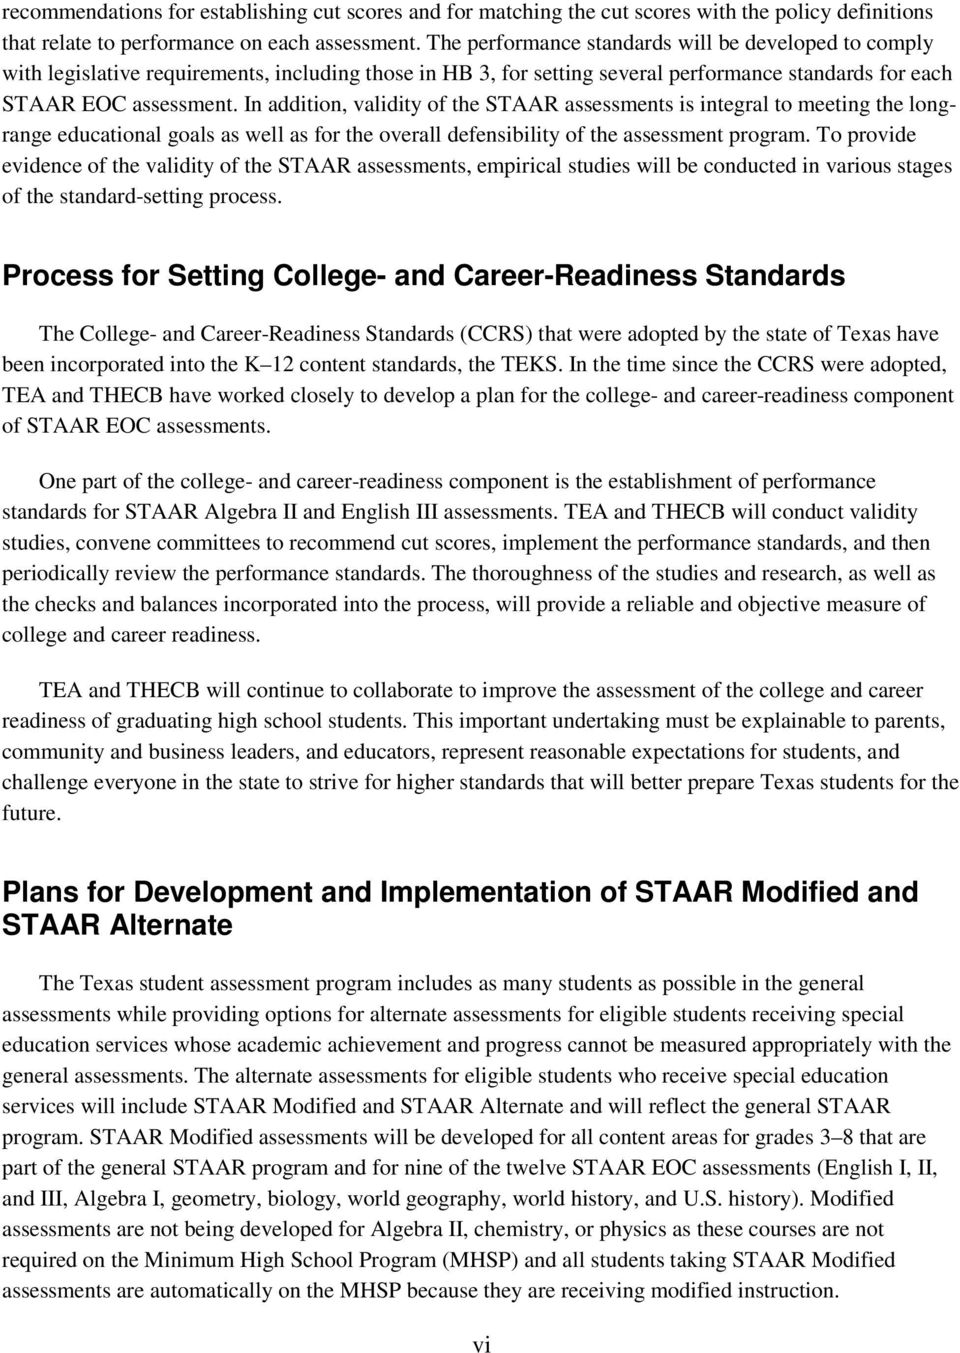 In addition, validity of the STAAR assessments is integral to meeting the longrange educational goals as well as for the overall defensibility of the assessment program.